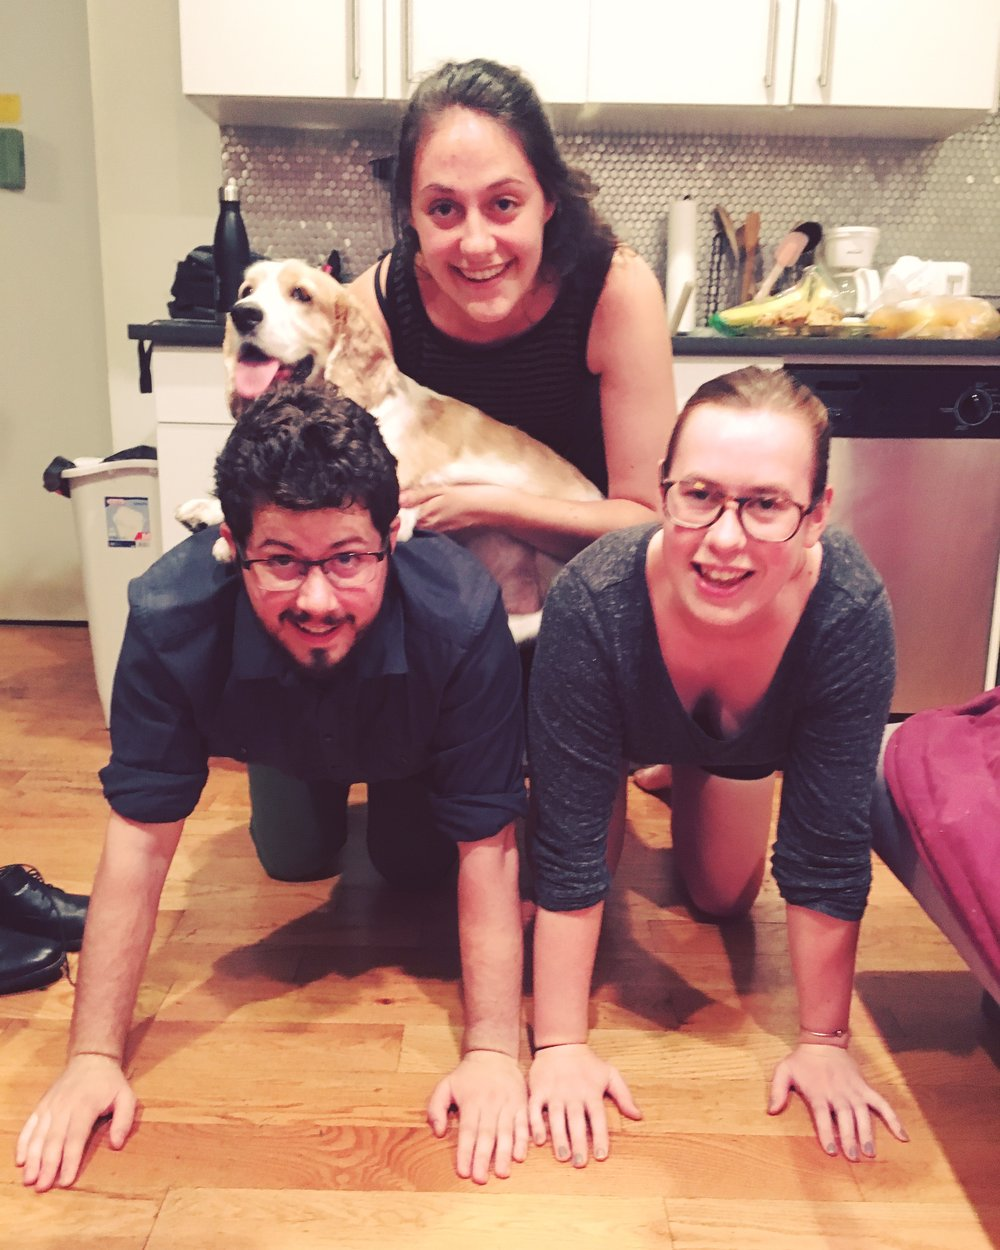 Human-dog pyramid aka, apartment boredom